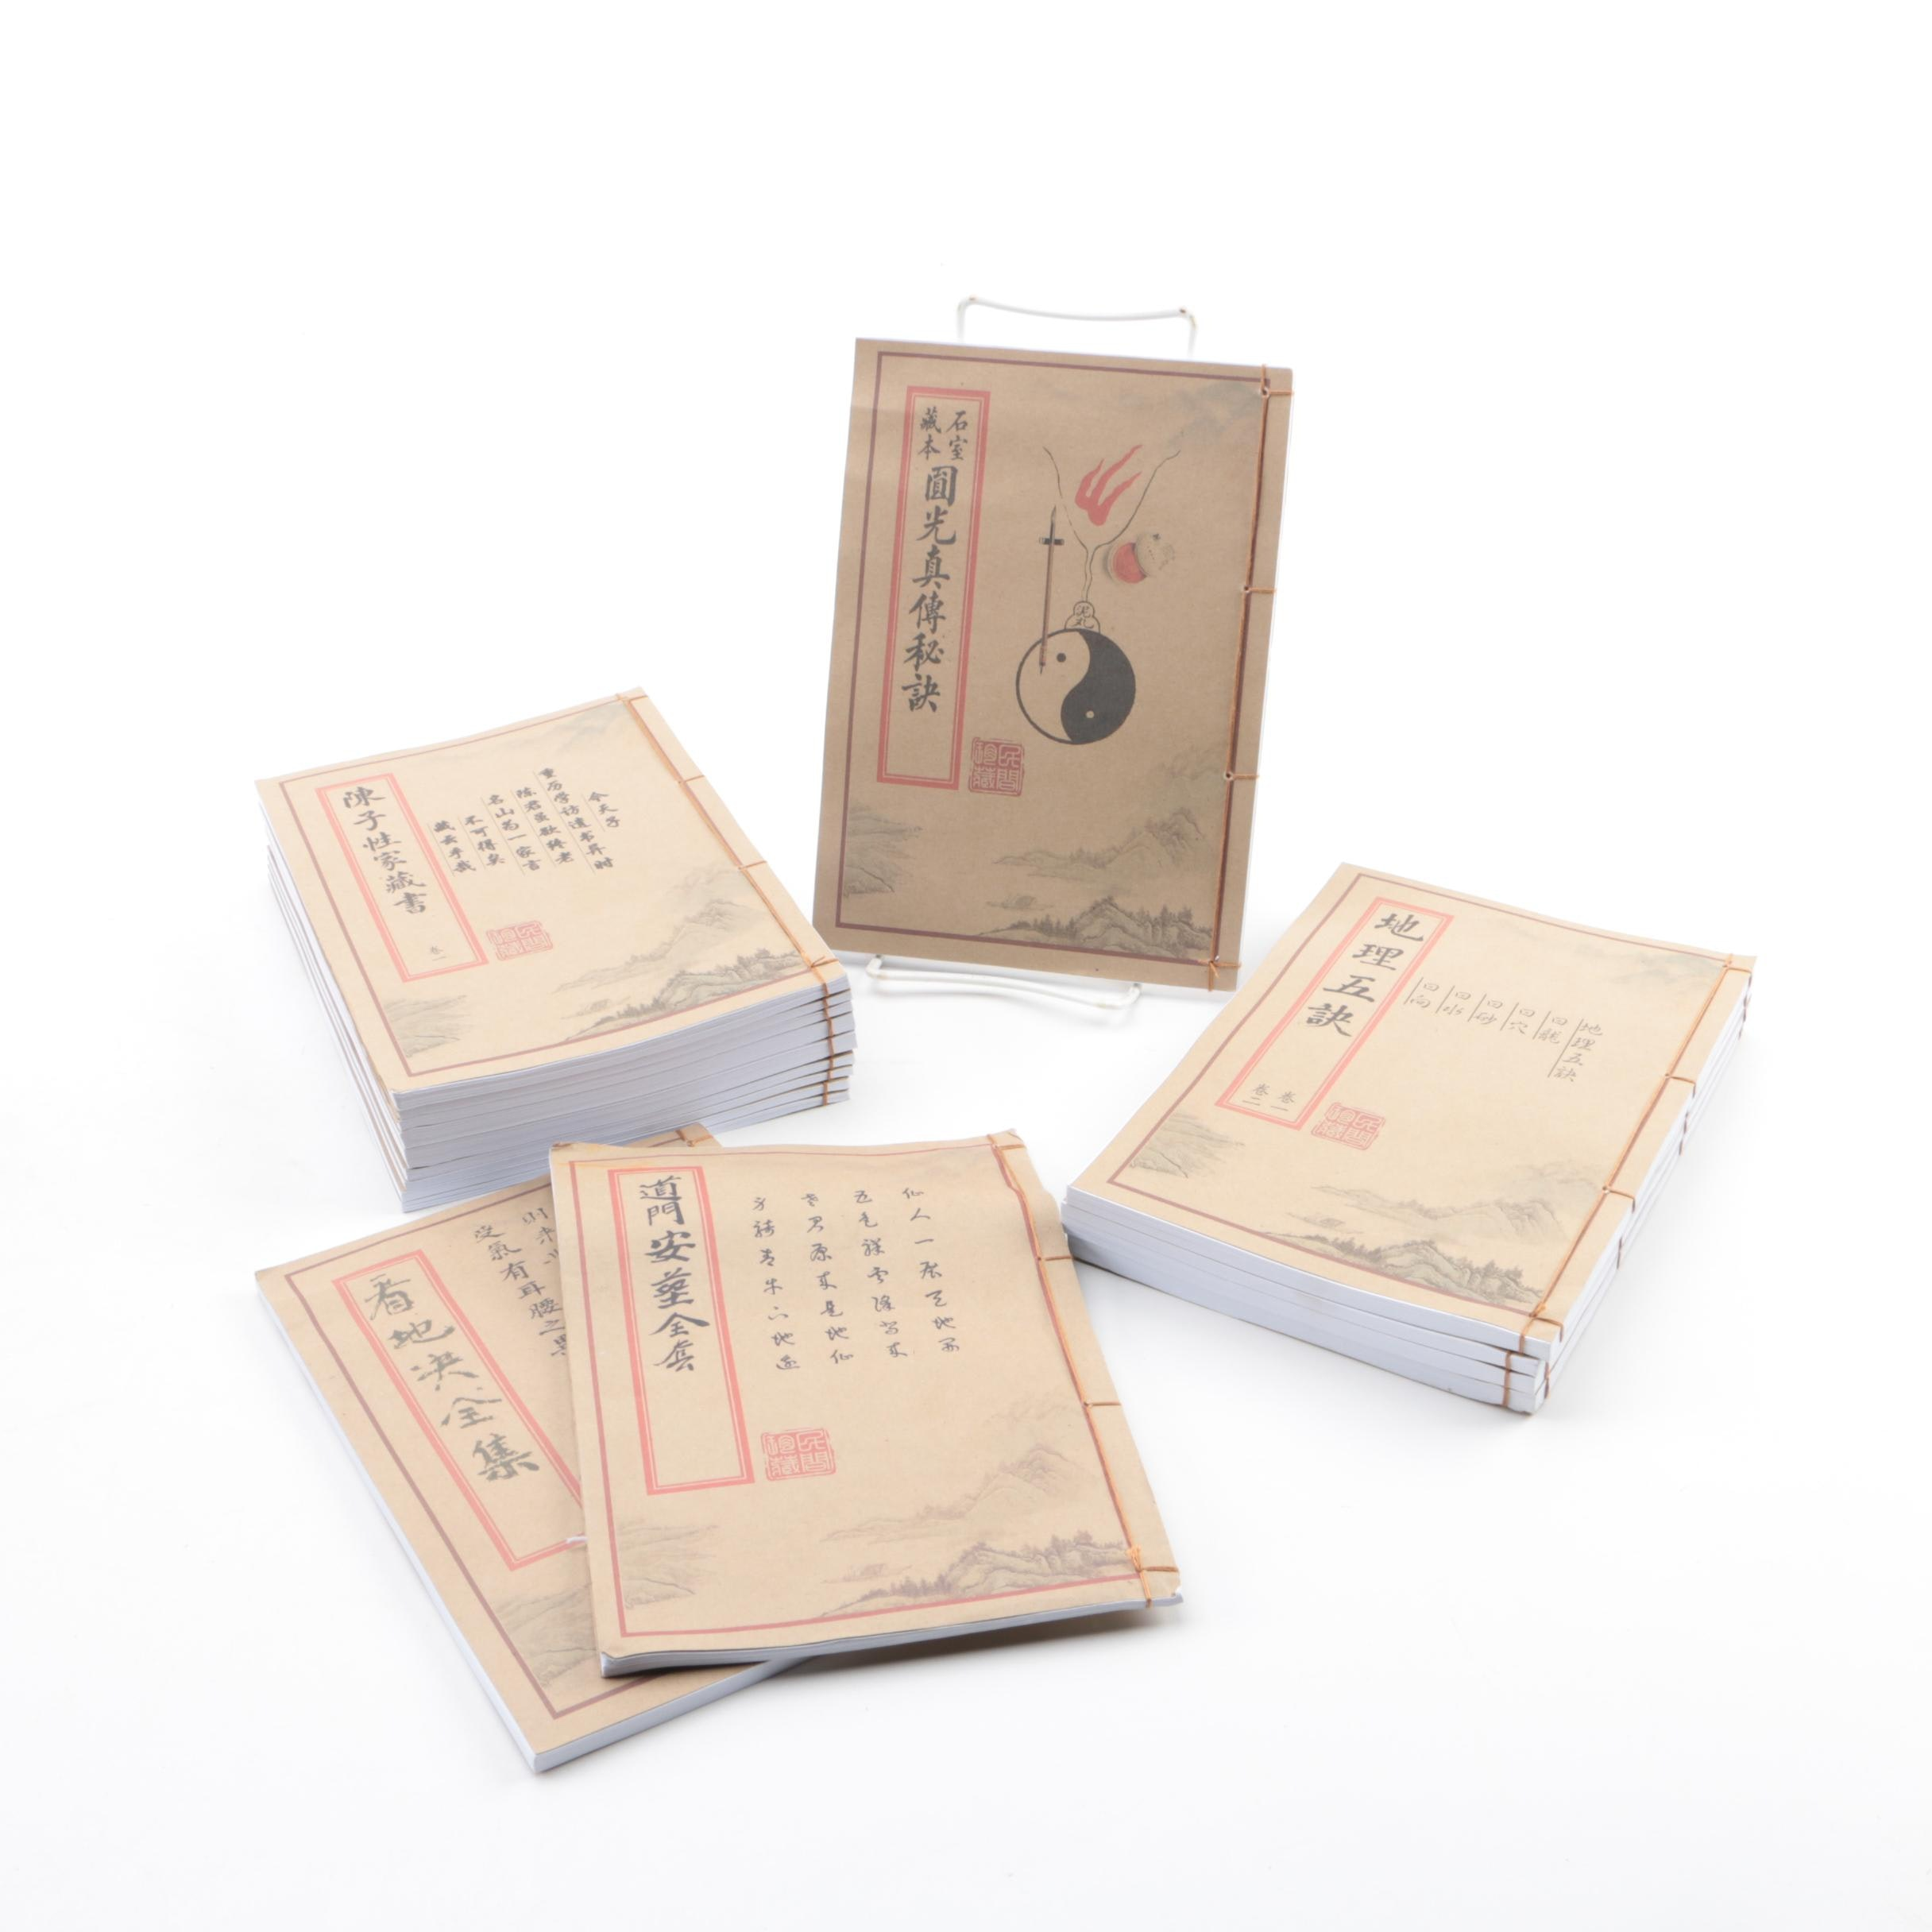 Facsimile Volumes of Classical Chinese Texts